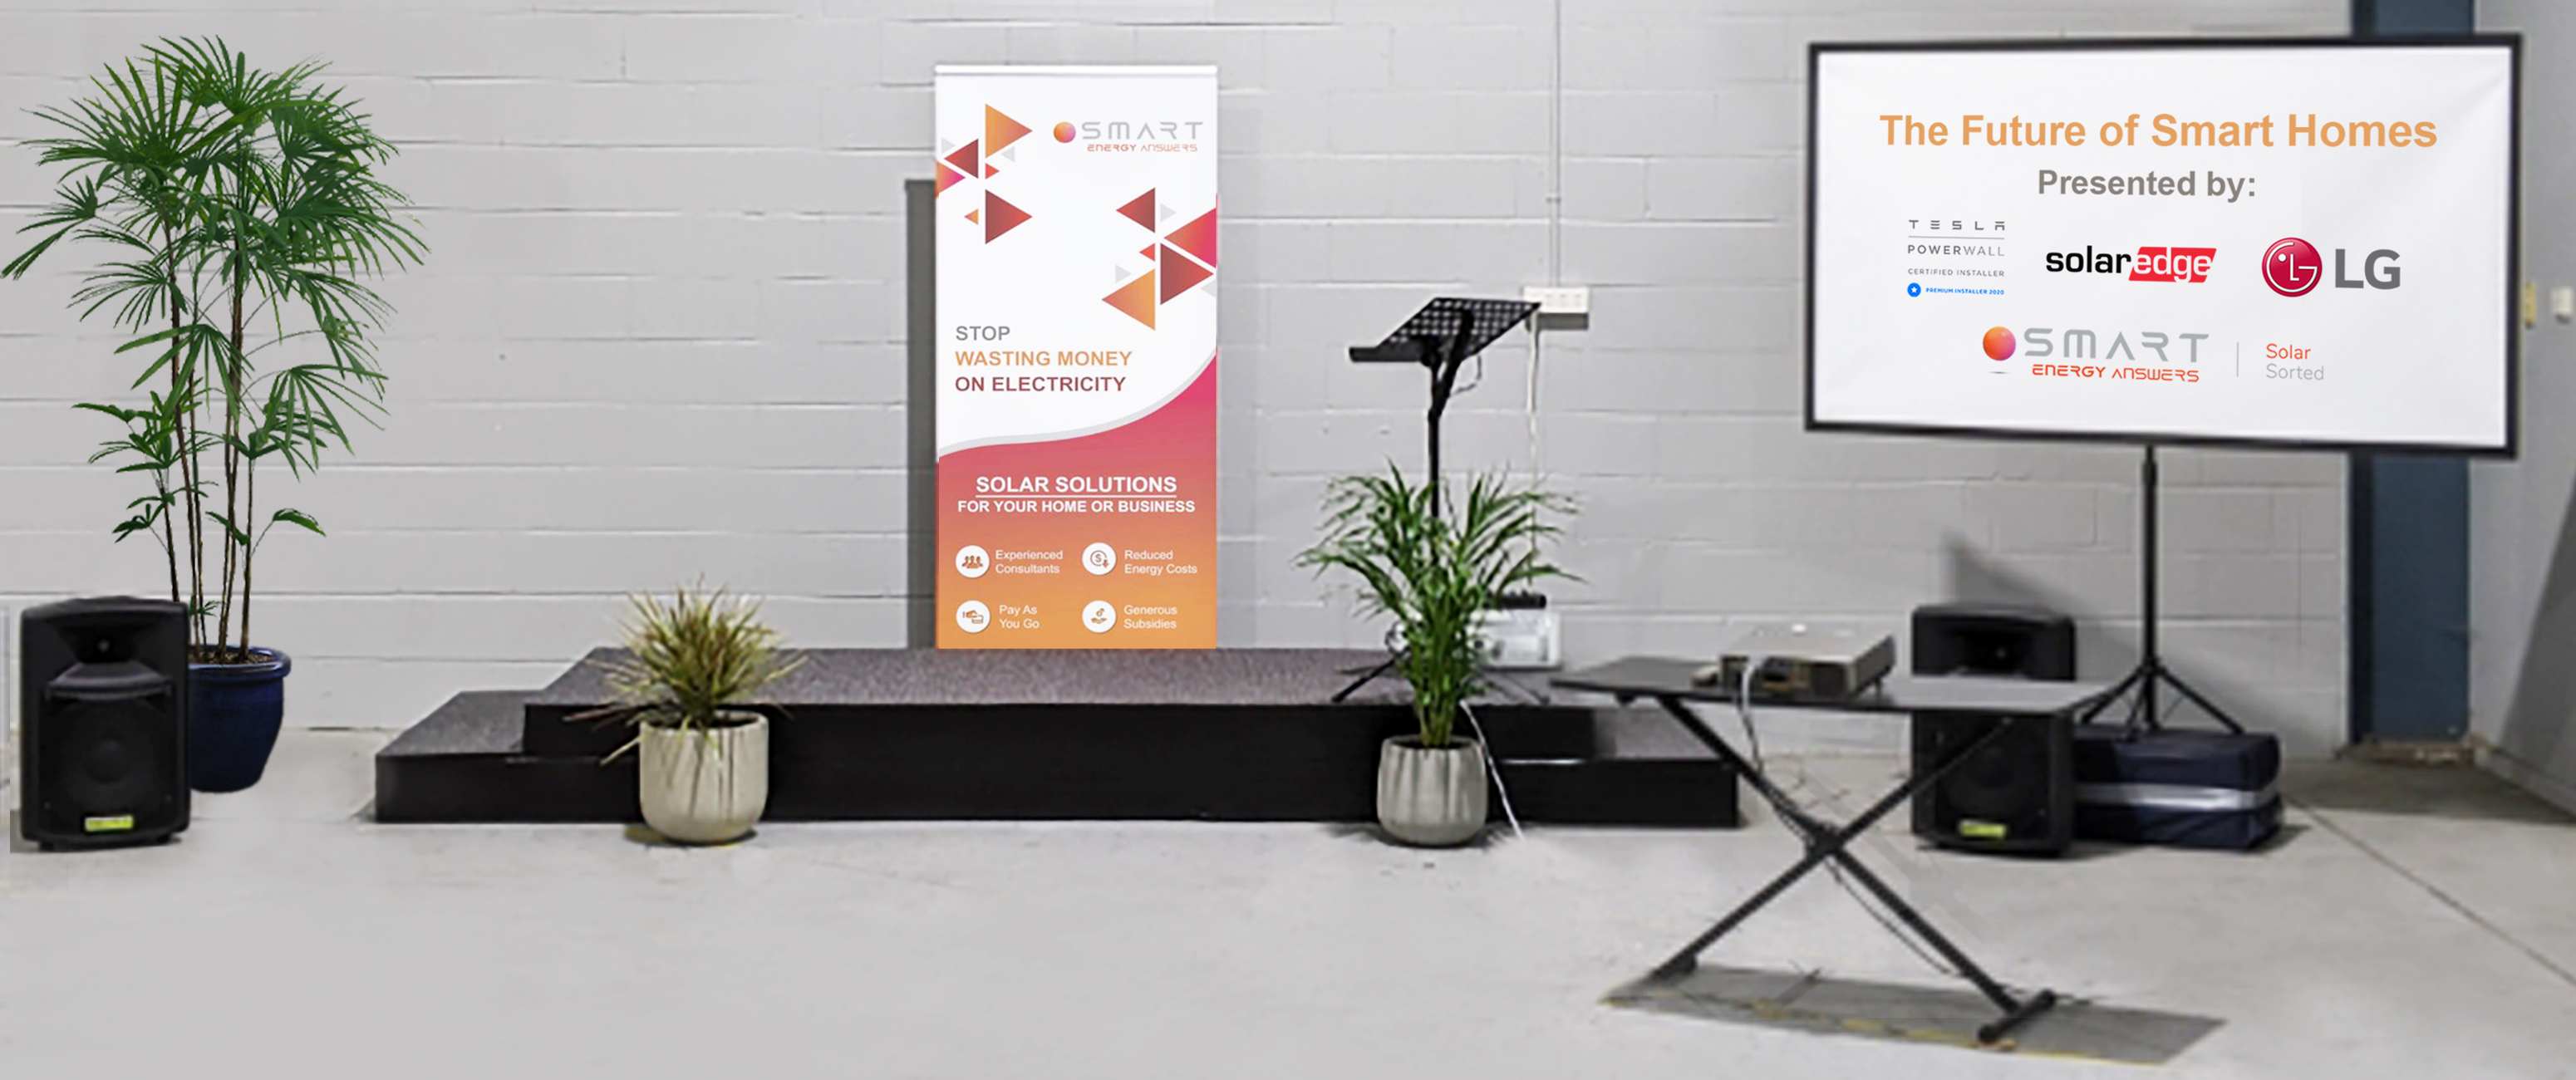 The Future of The Smart Homes Event - featured image